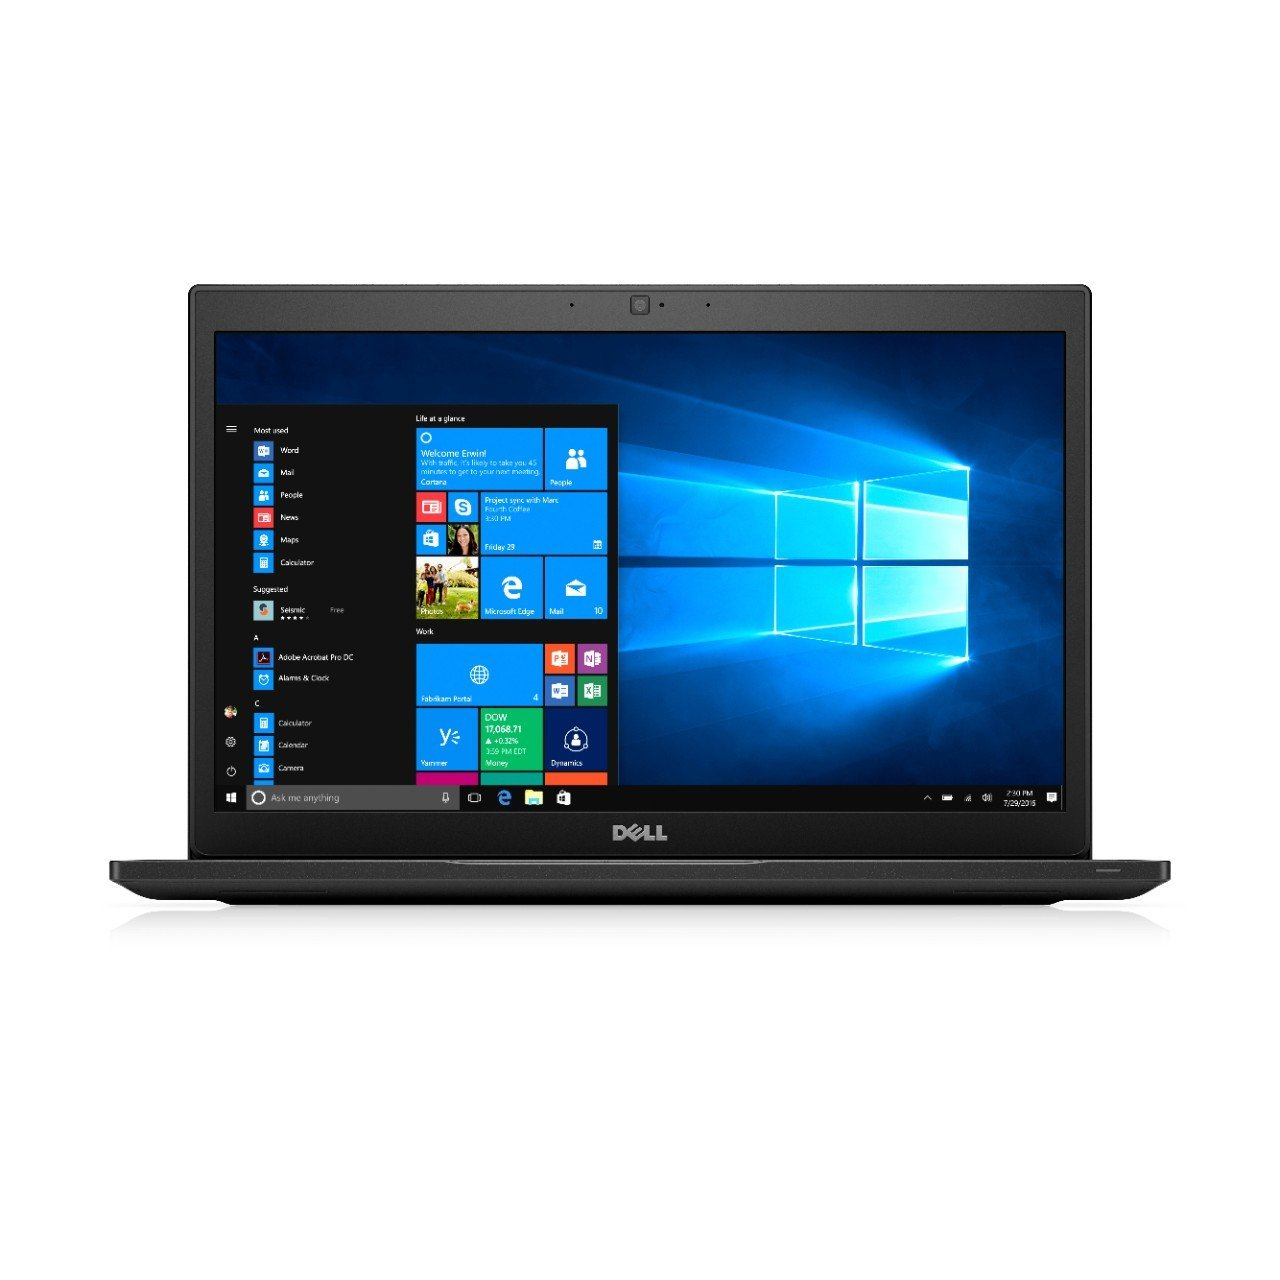 Ultrabook Dell Latitude 7480 14 Full HD Intel Core i5-7300U RAM 8GB SSD 256GB Windows 10 Pro